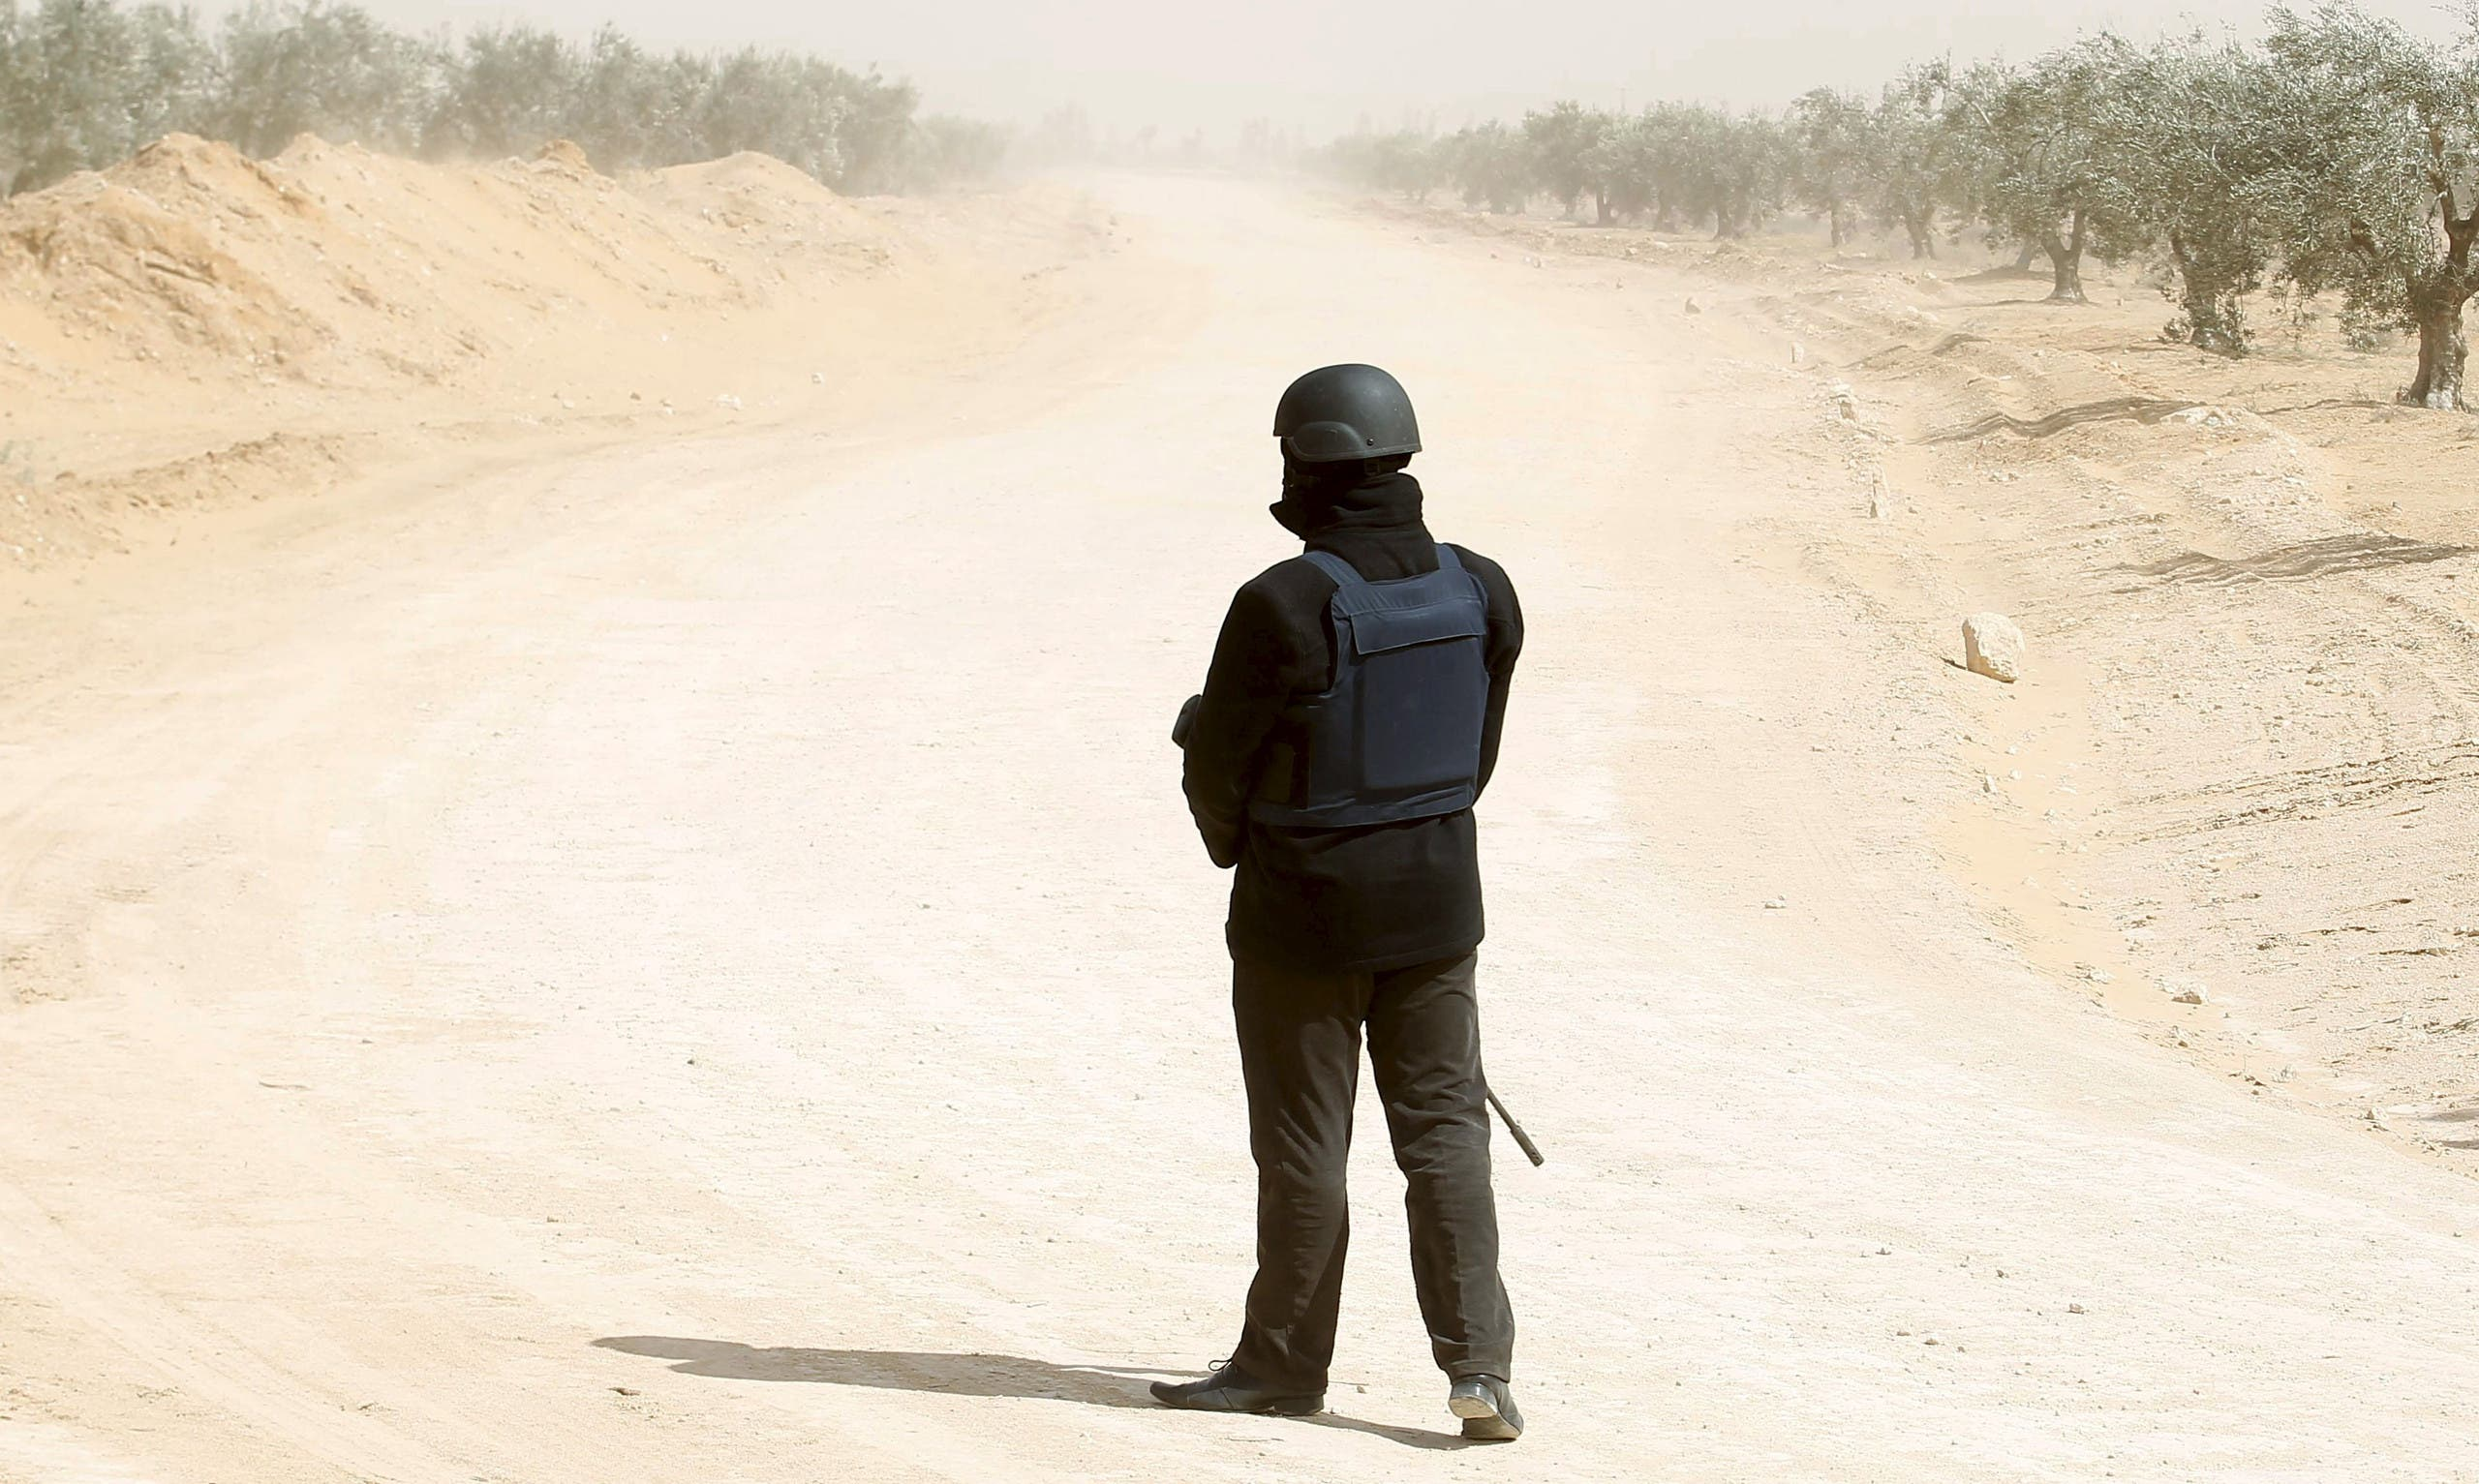 A Tunisian police officer stands guard during an operation to eliminate militants in a village some 50 km (31 miles) from the town of Ben Guerdane, Tunisia, near the Libyan border, March 10, 2016. (Reuters)